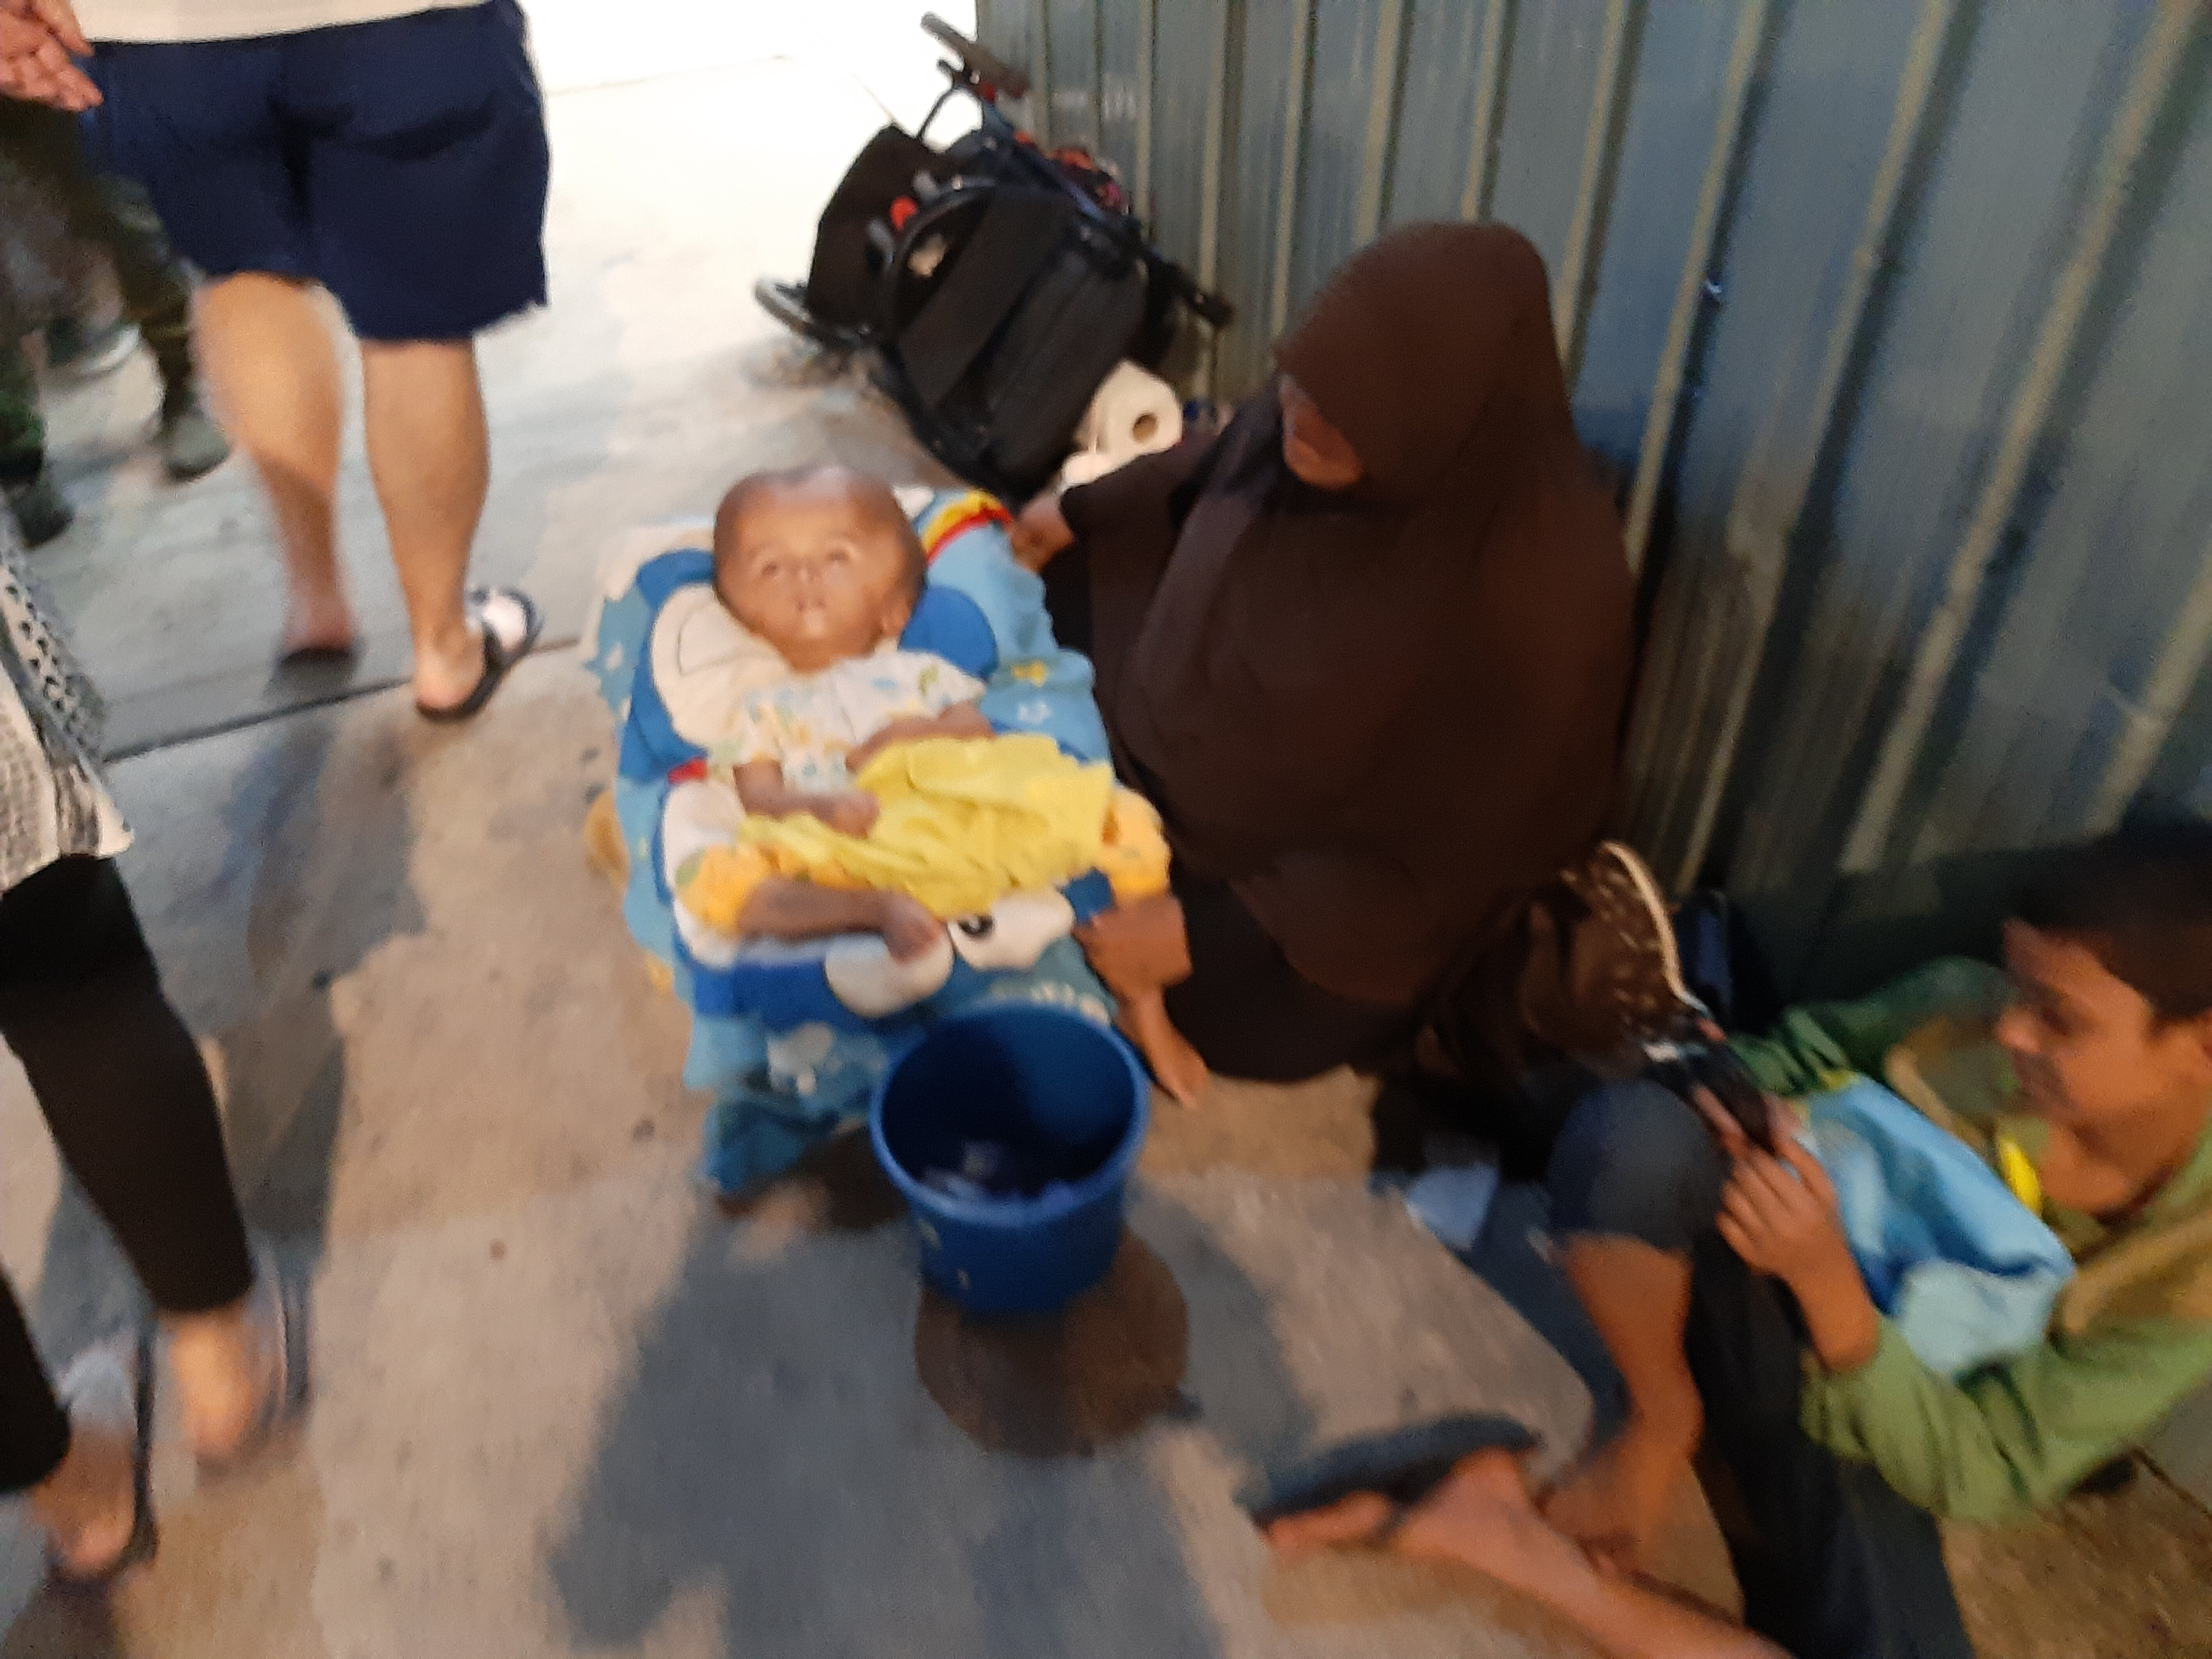 Sick child with hydrocephalus, begging mother.